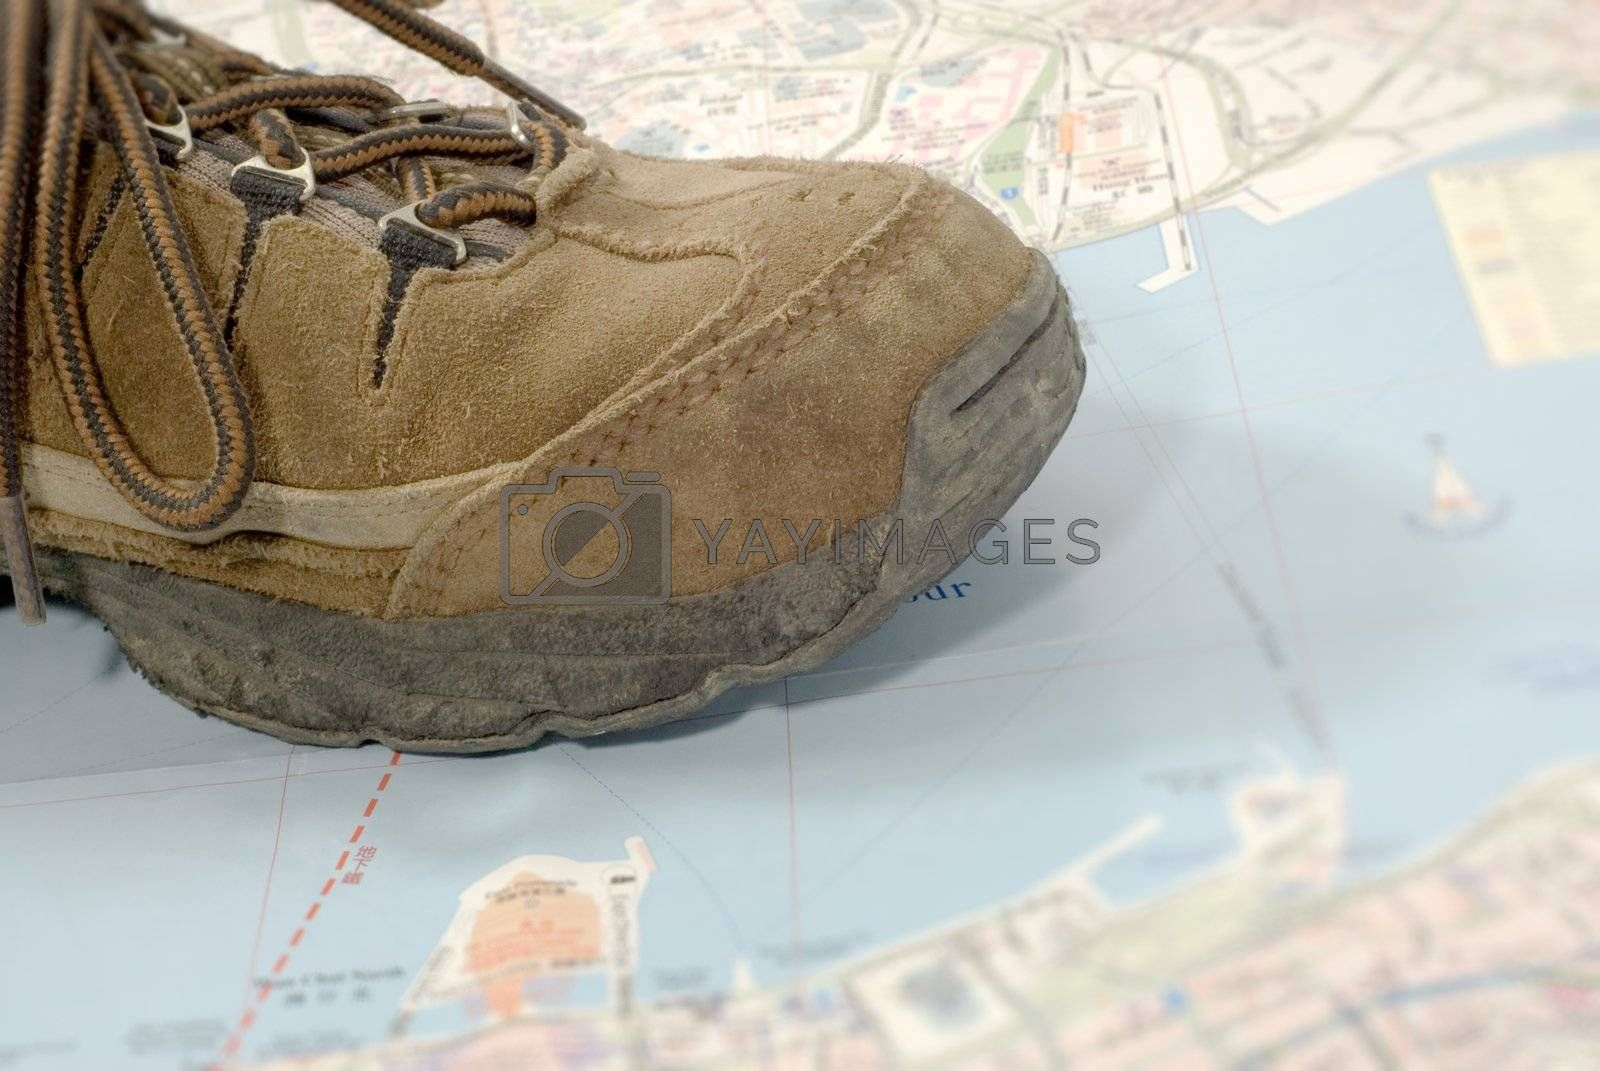 Royalty free image of old shoes traveling world alone by elwynn